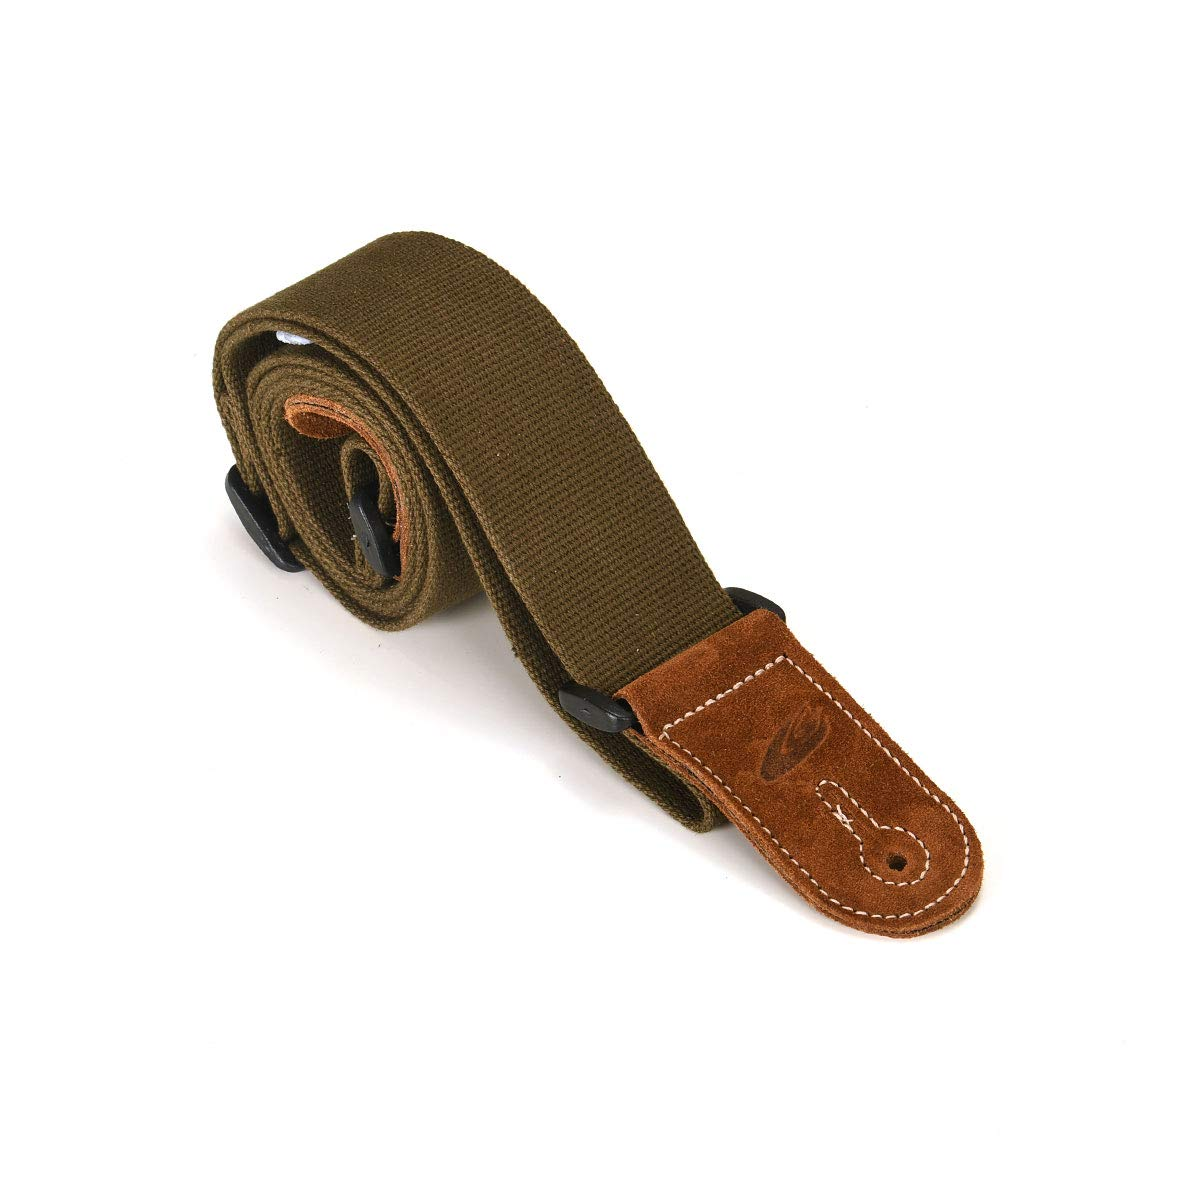 Leathergraft Khaki Green Traditional Cotton Plain Hemp Design 2 Inch Wide Guitar Strap - For all Electric, Acoustic, Classical and Bass Guitars